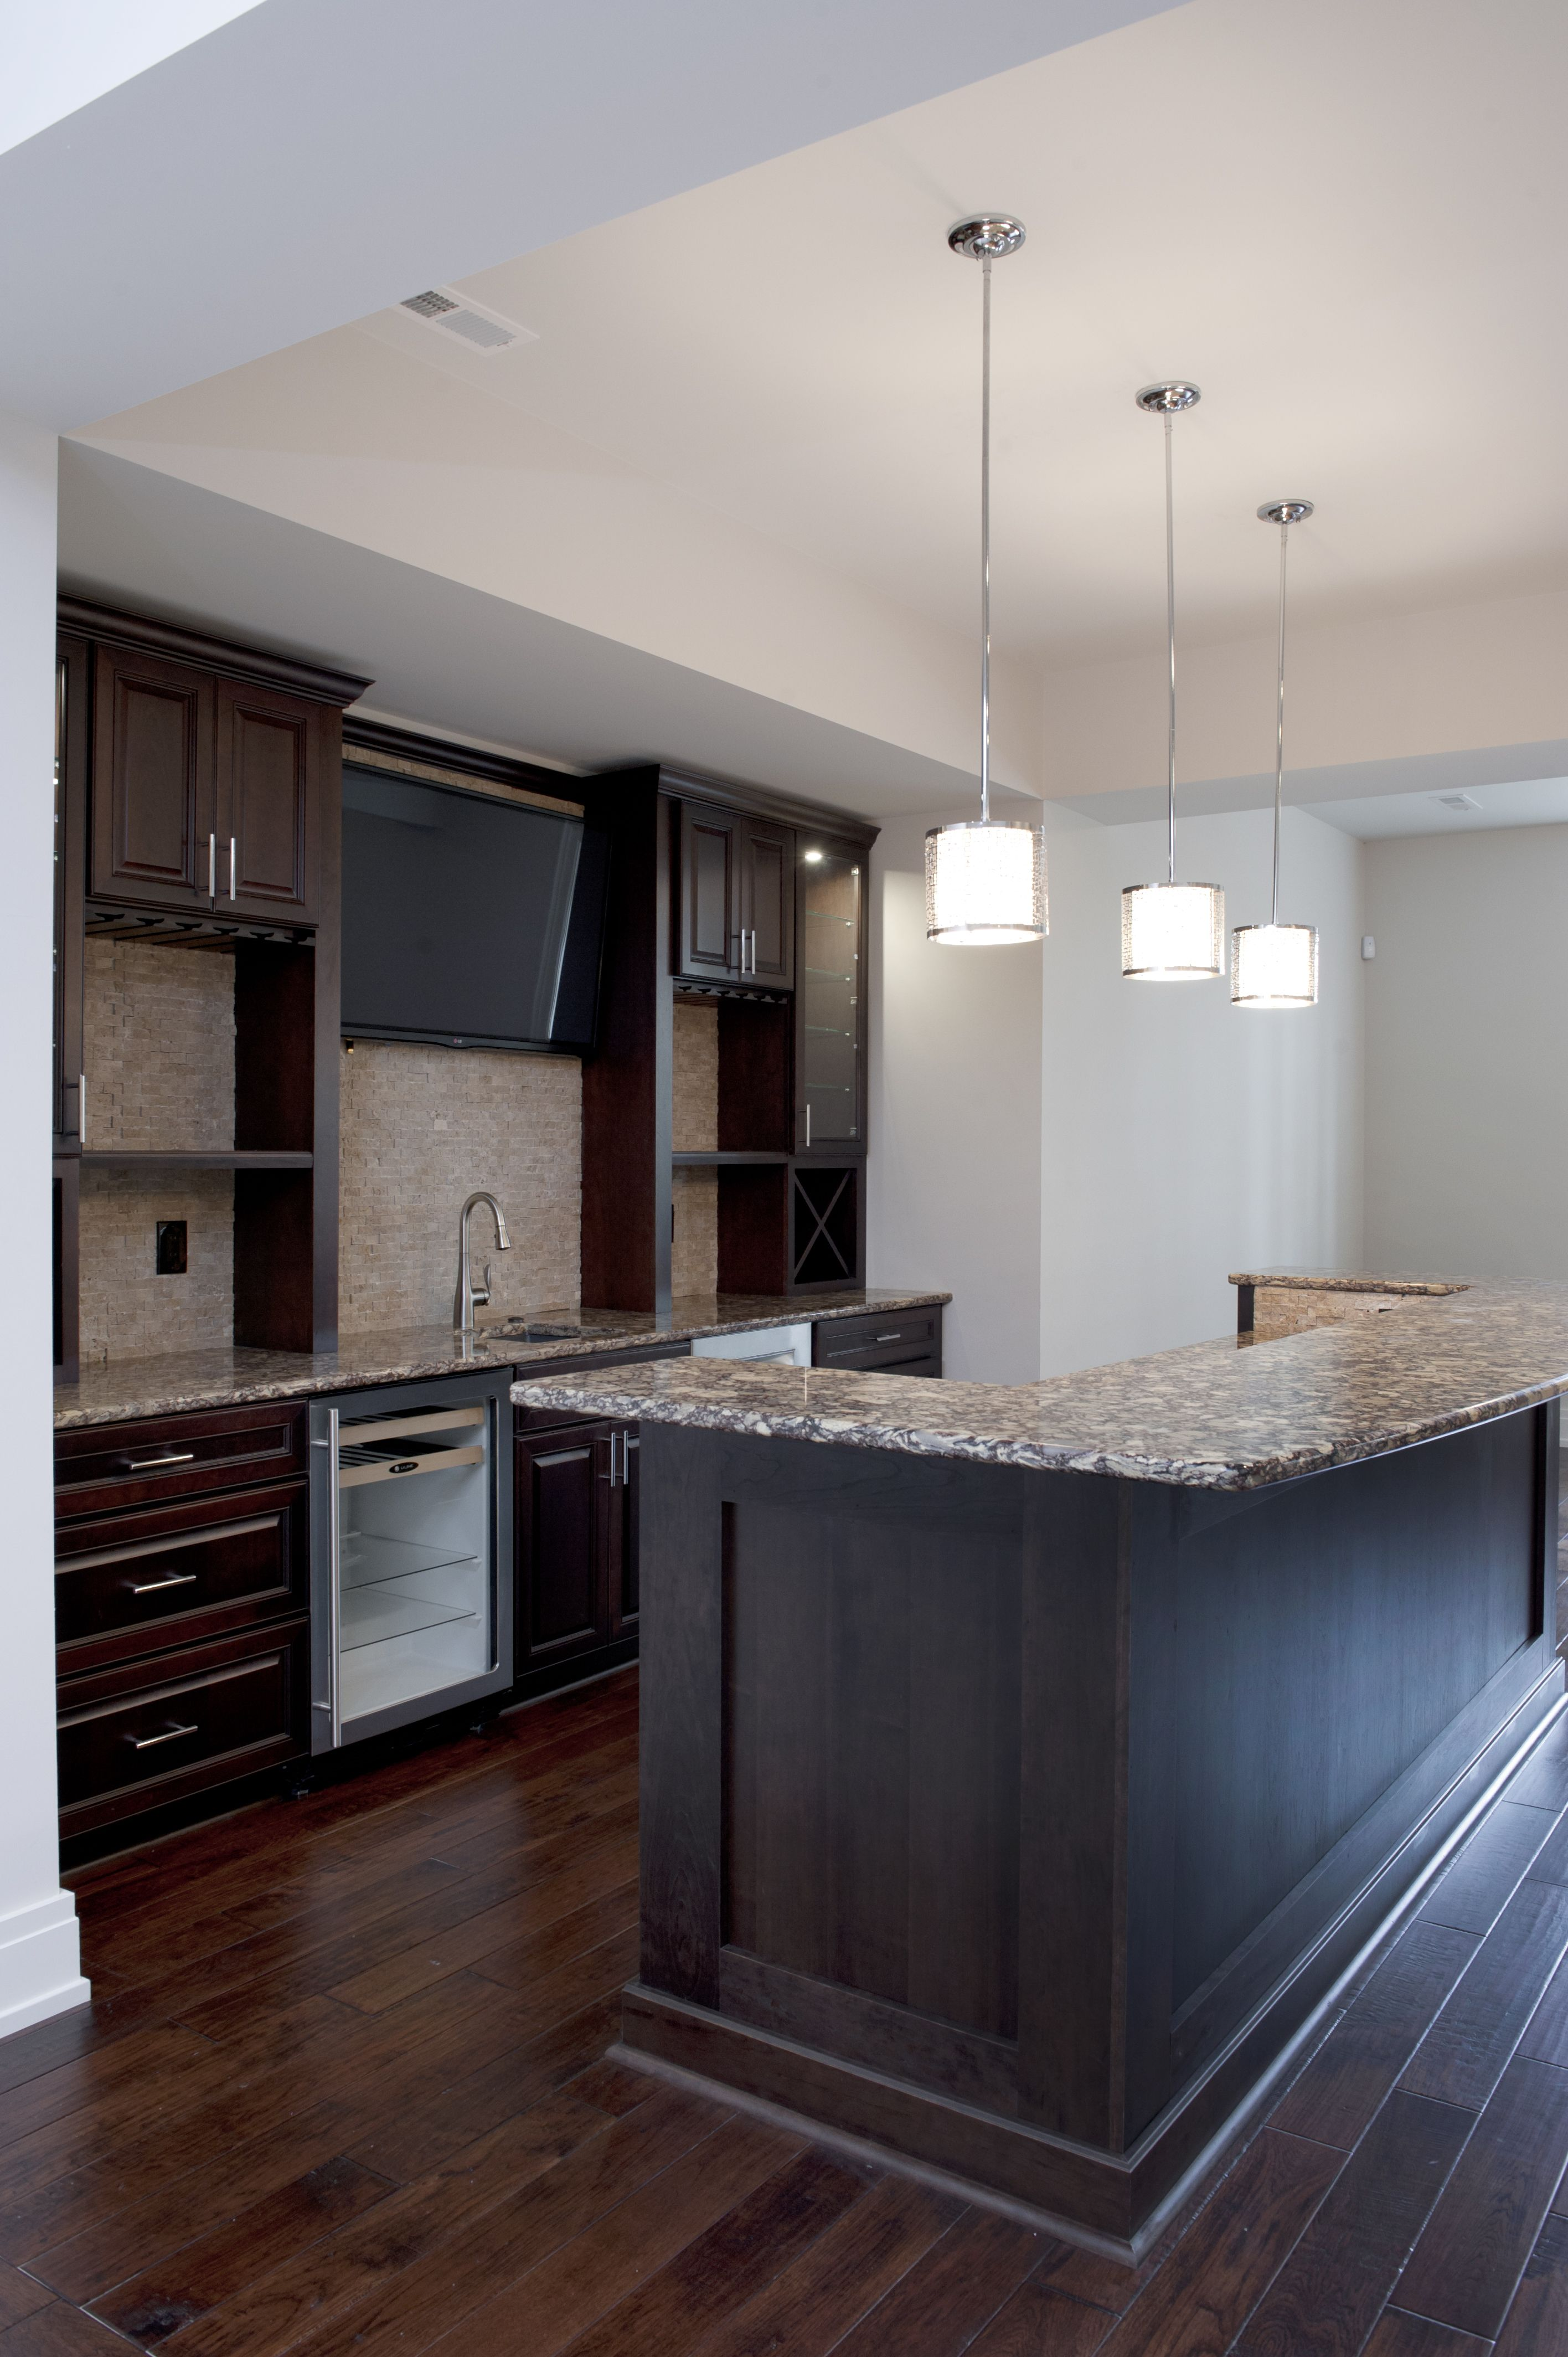 Basement Bar Yorktowne Cherry Cabinets With Espresso Finish, Cambria Countertops And